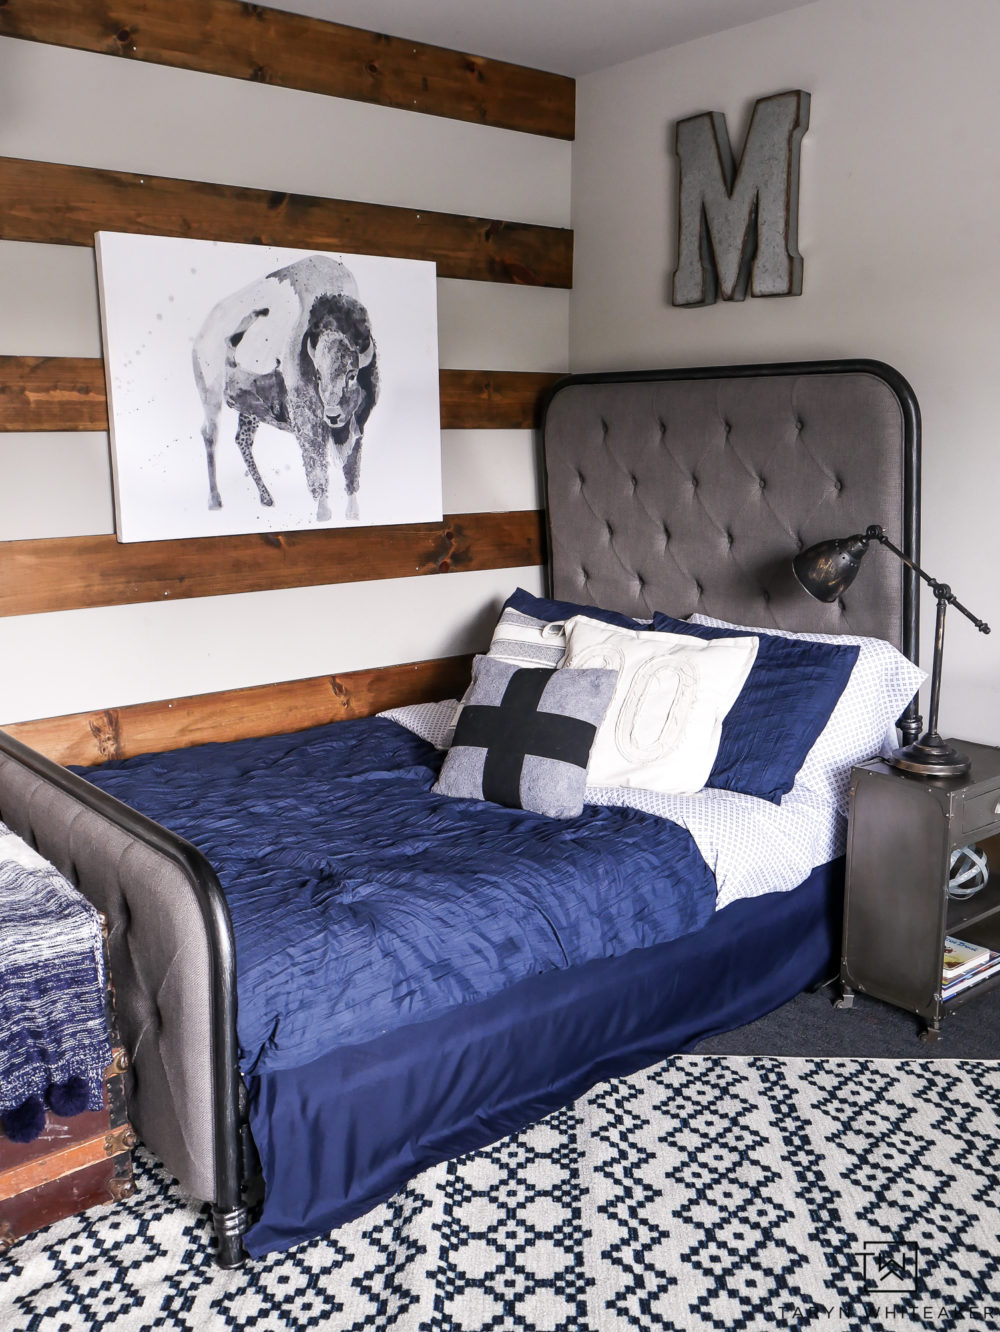 Love this rustic look for a boy room! The navy blue bedding and patterned rug mixed with wood tones and metals.